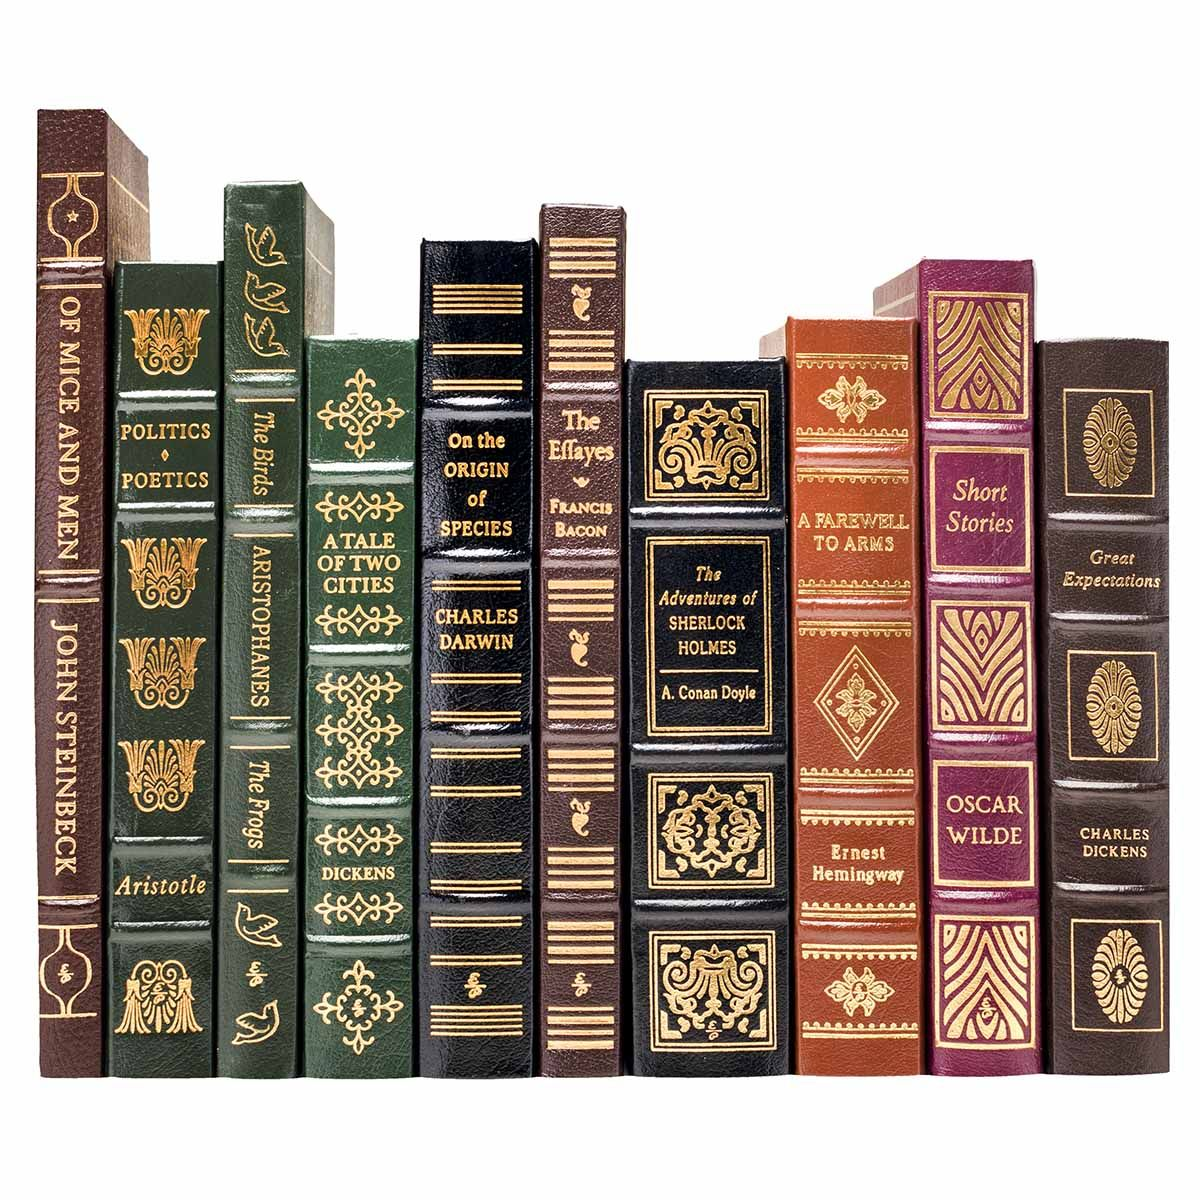 A Complete Set Of The 100 Greatest Books Ever Written Series From Easton Press Each Volume Is Bound In Leather Wi Leather Books Leather Bound Books Book Spine